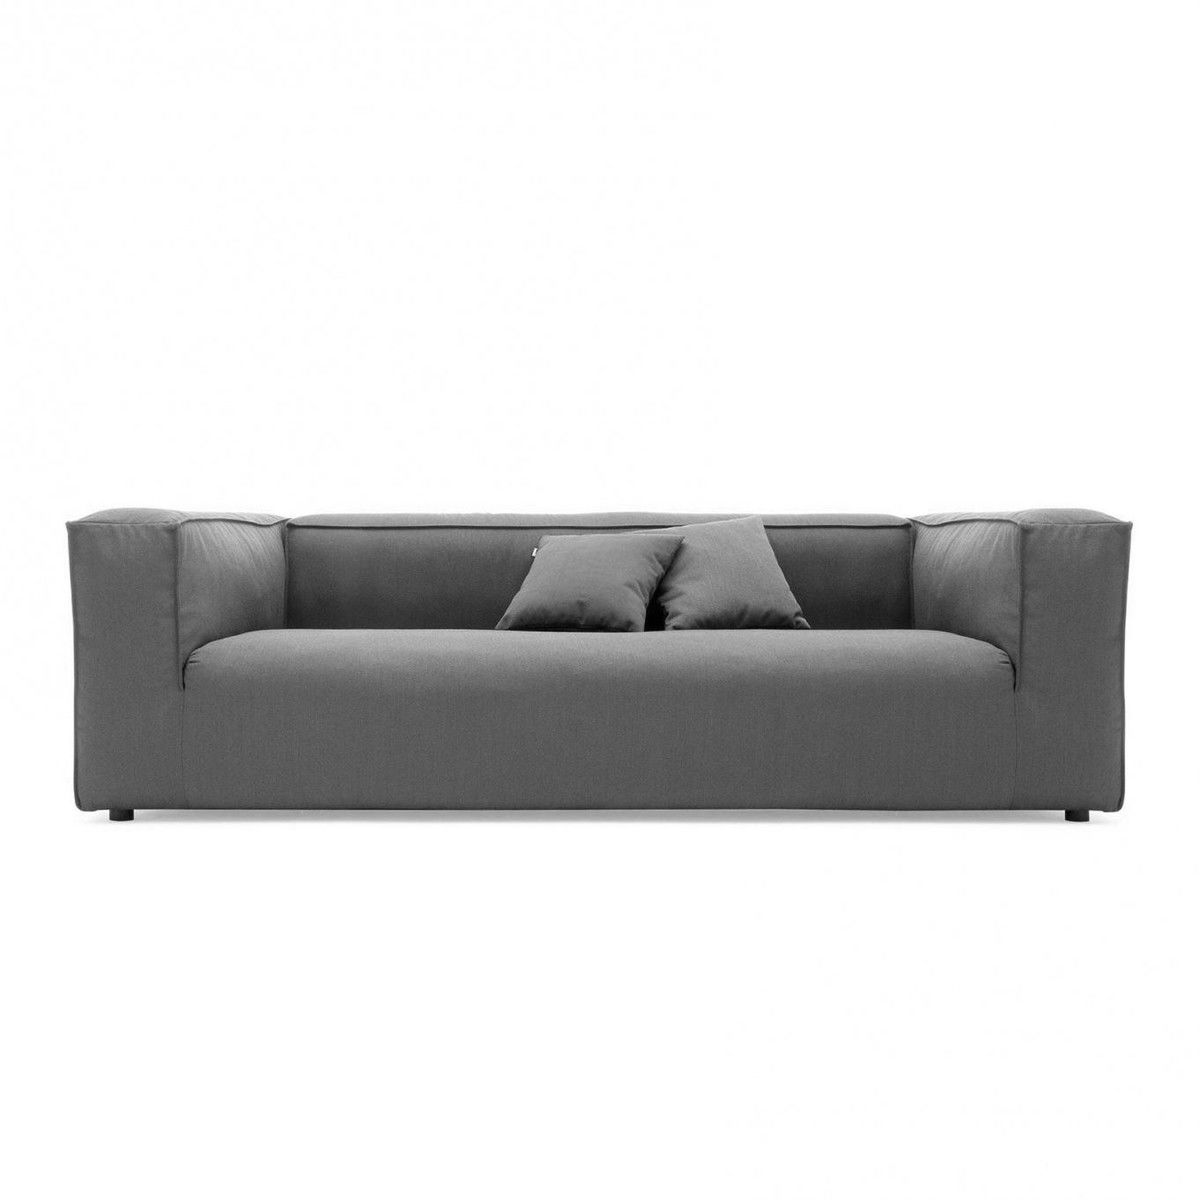 freistil 175 3 sitzer sofa freistil rolf benz. Black Bedroom Furniture Sets. Home Design Ideas